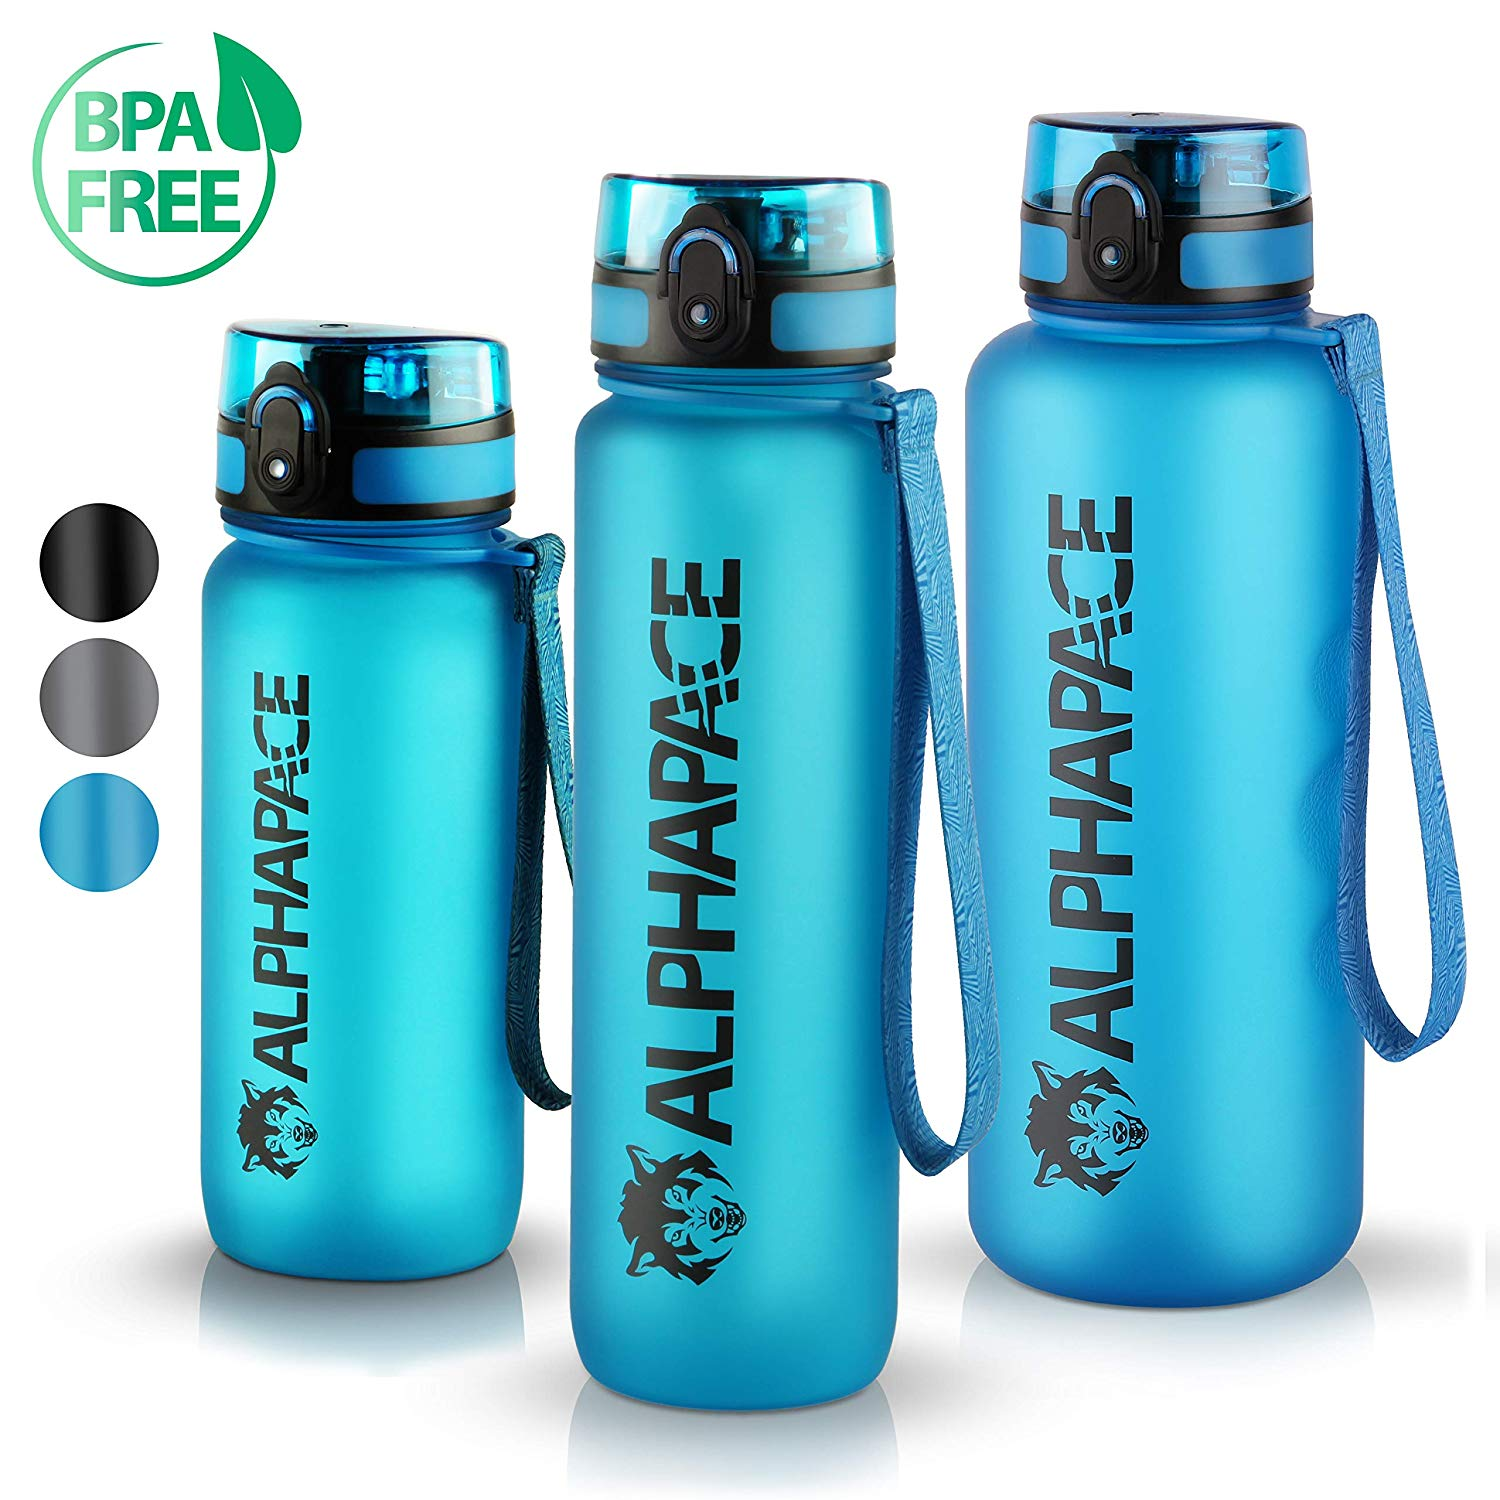 bpa freie trinkflasche 1 liter alphapace bpa freie. Black Bedroom Furniture Sets. Home Design Ideas